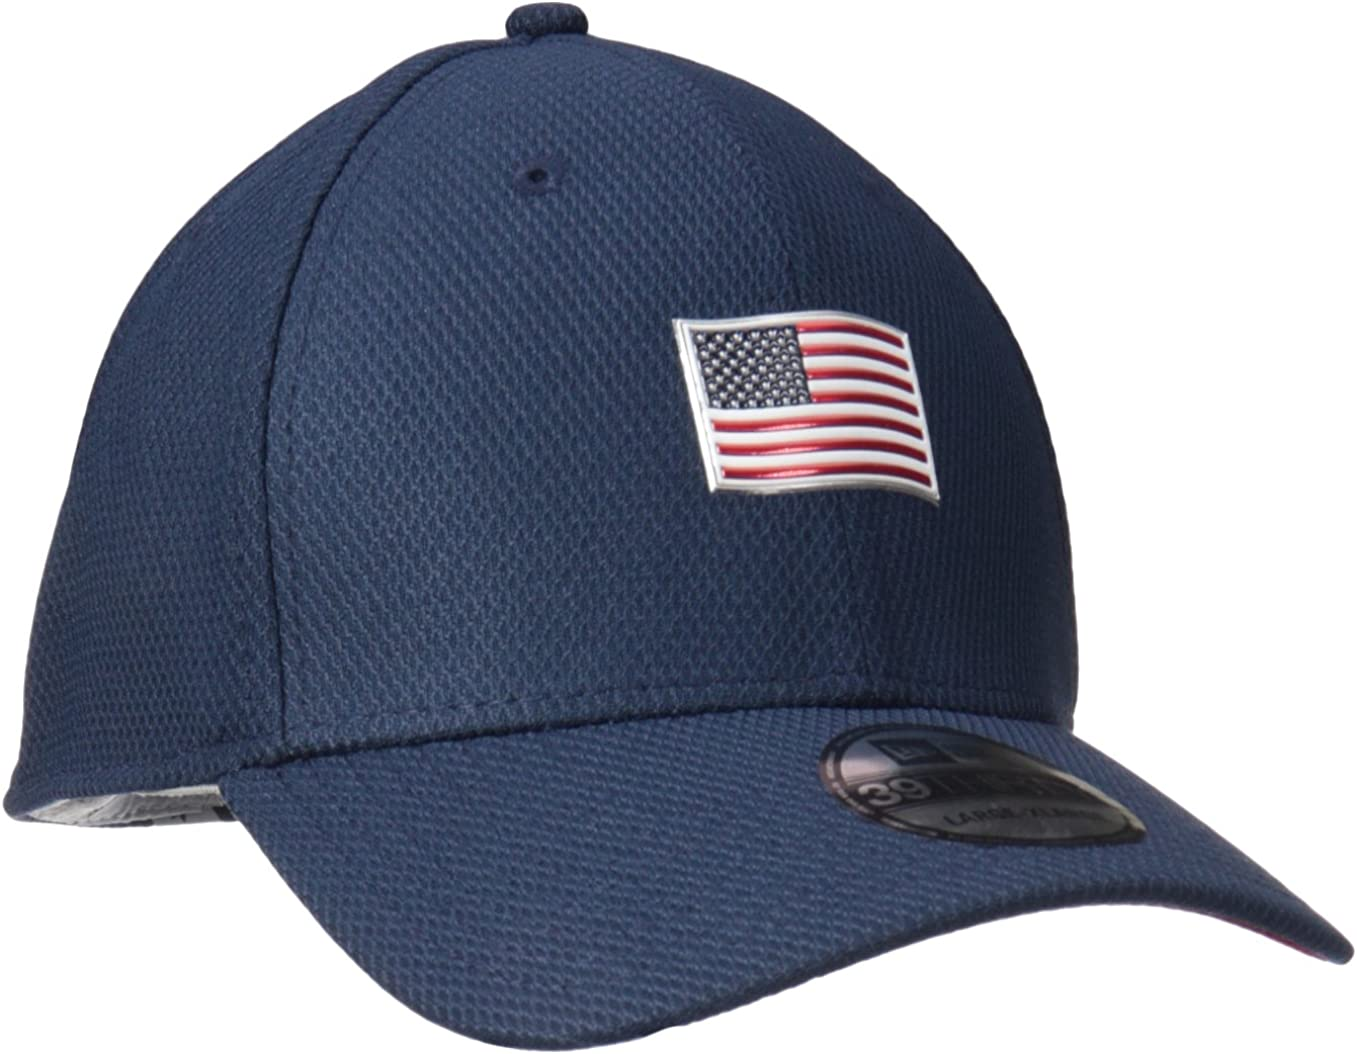 New New Era 39Thirty American Flag Fitted CAMO Hat//Cap Free Shipping